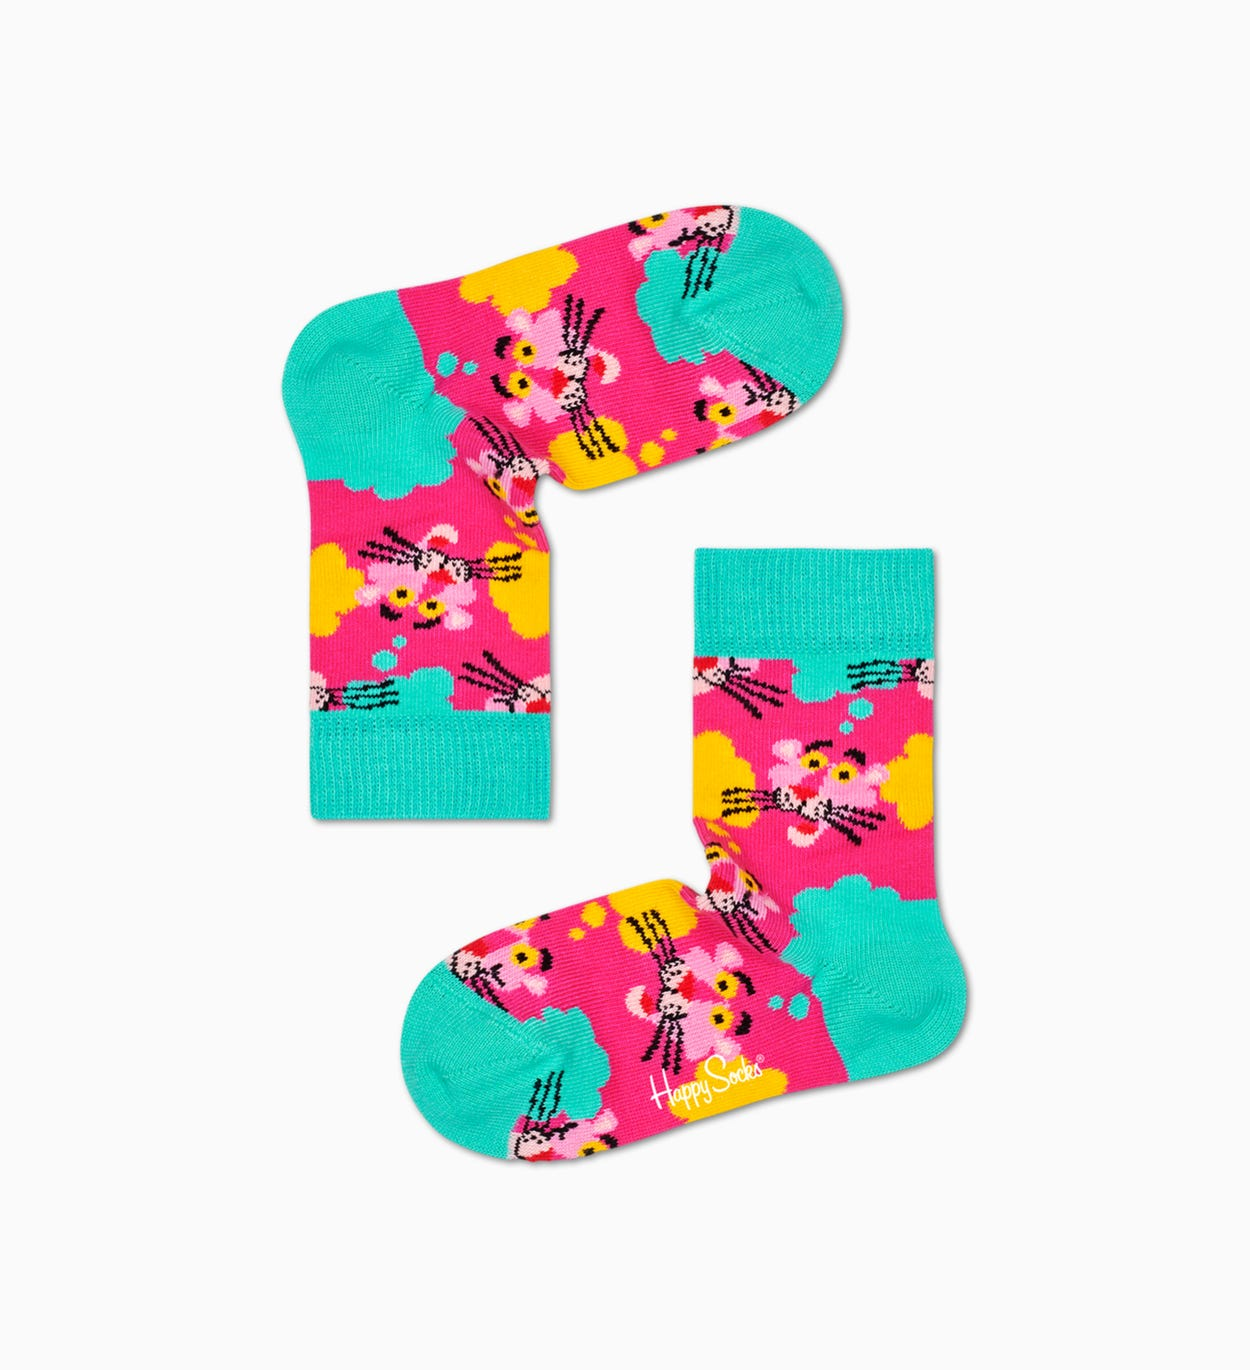 Happy Socks x Pink Panther: Think Pink Kids & Baby Sock